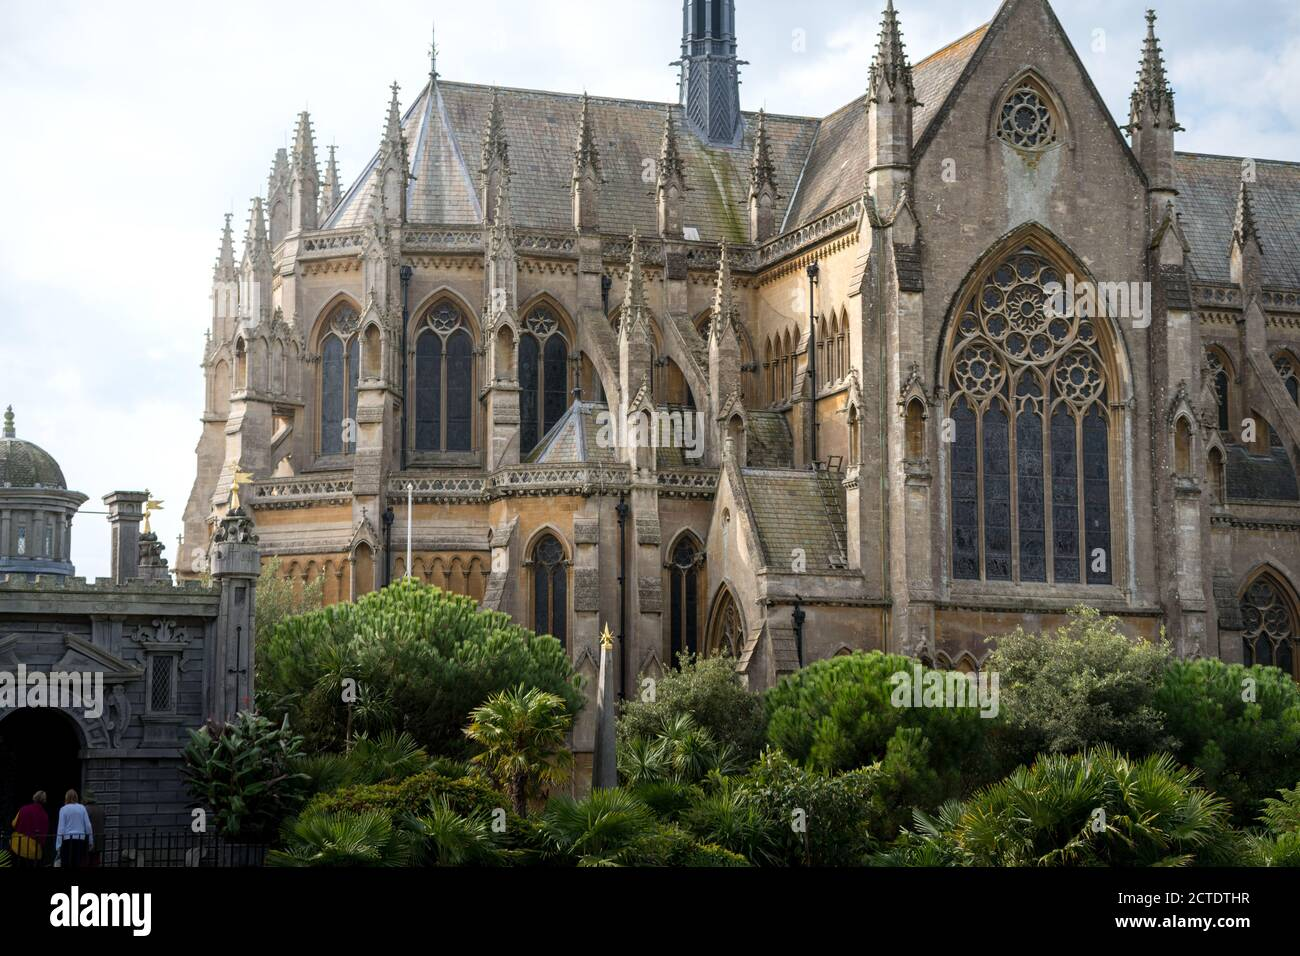 Arundel Cathedral church of our lady and St Philip Howard in West Sussex, England. Summer 2020 flowers blooming. Stock Photo